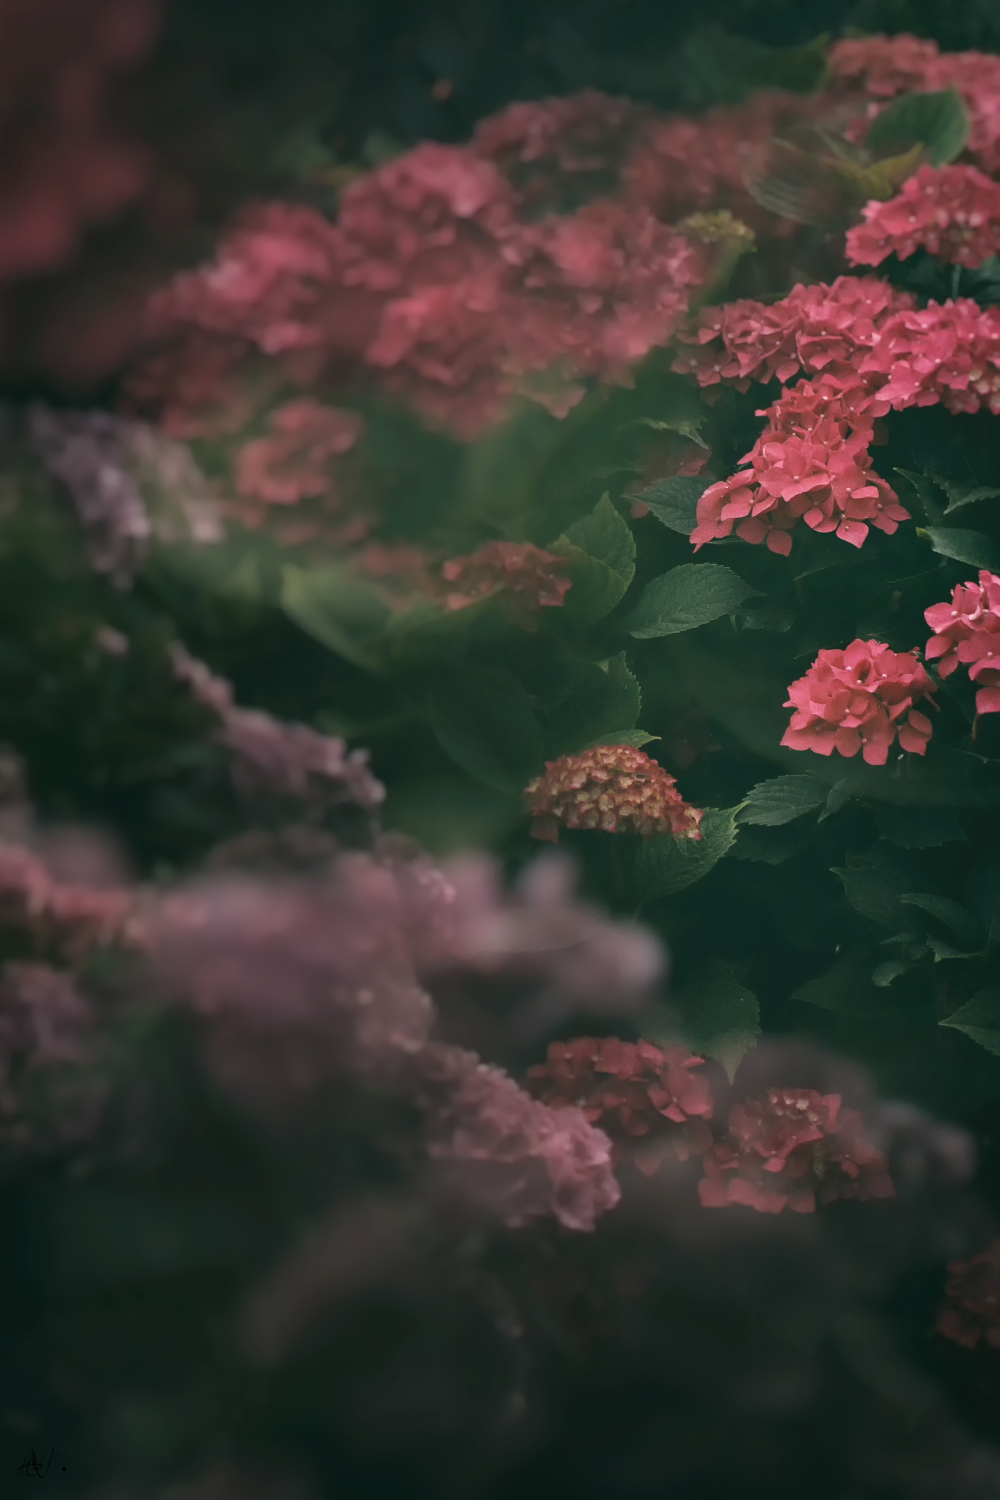 The beauty of Hortensia